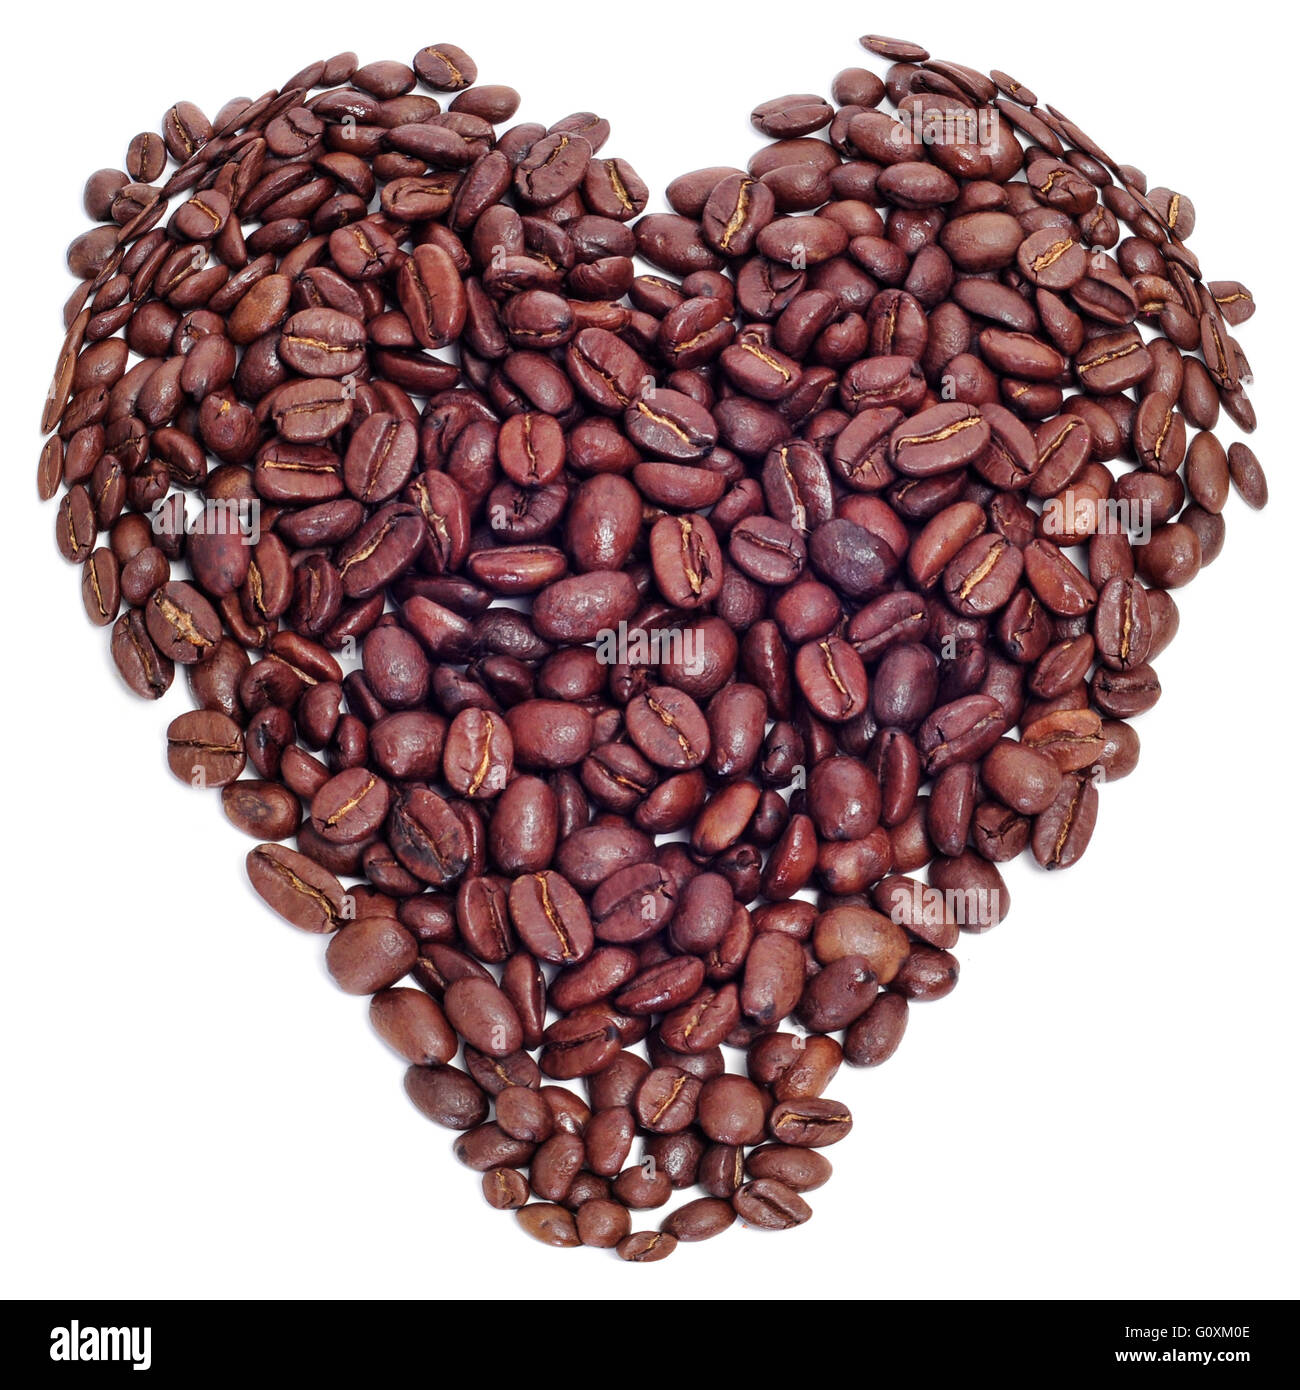 a pile roasted coffee beans forming a heart on a black background - Stock Image